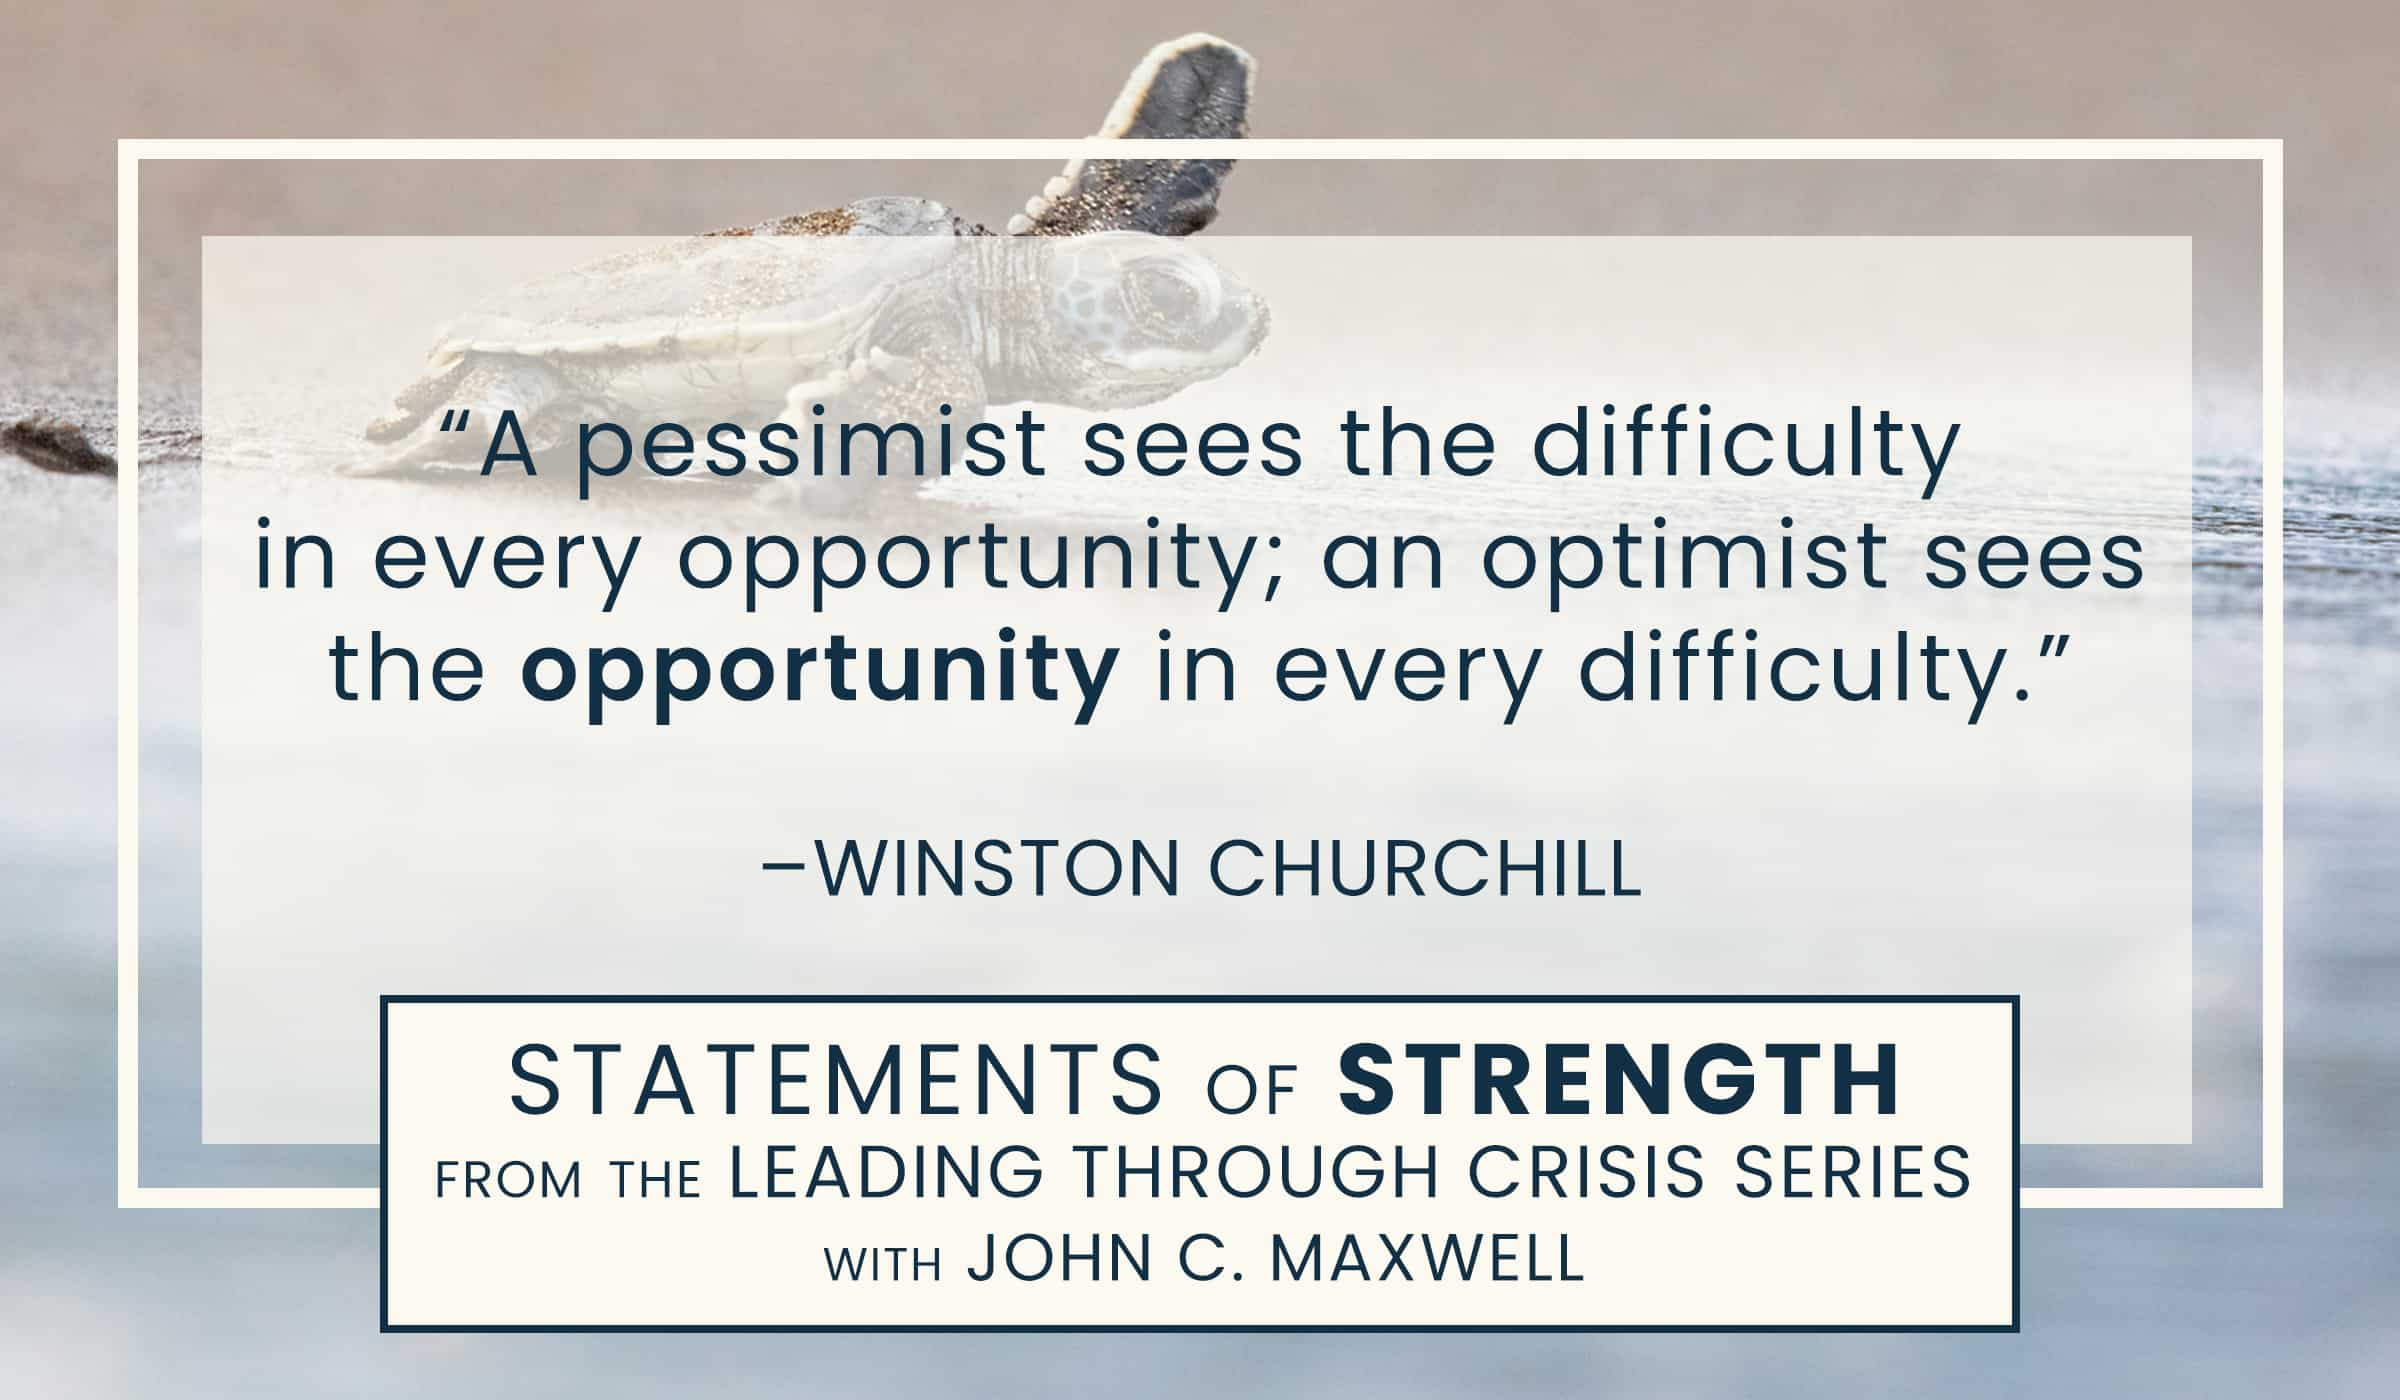 image of quotation picture with text quote of winston churchill about opportunity and difficulties